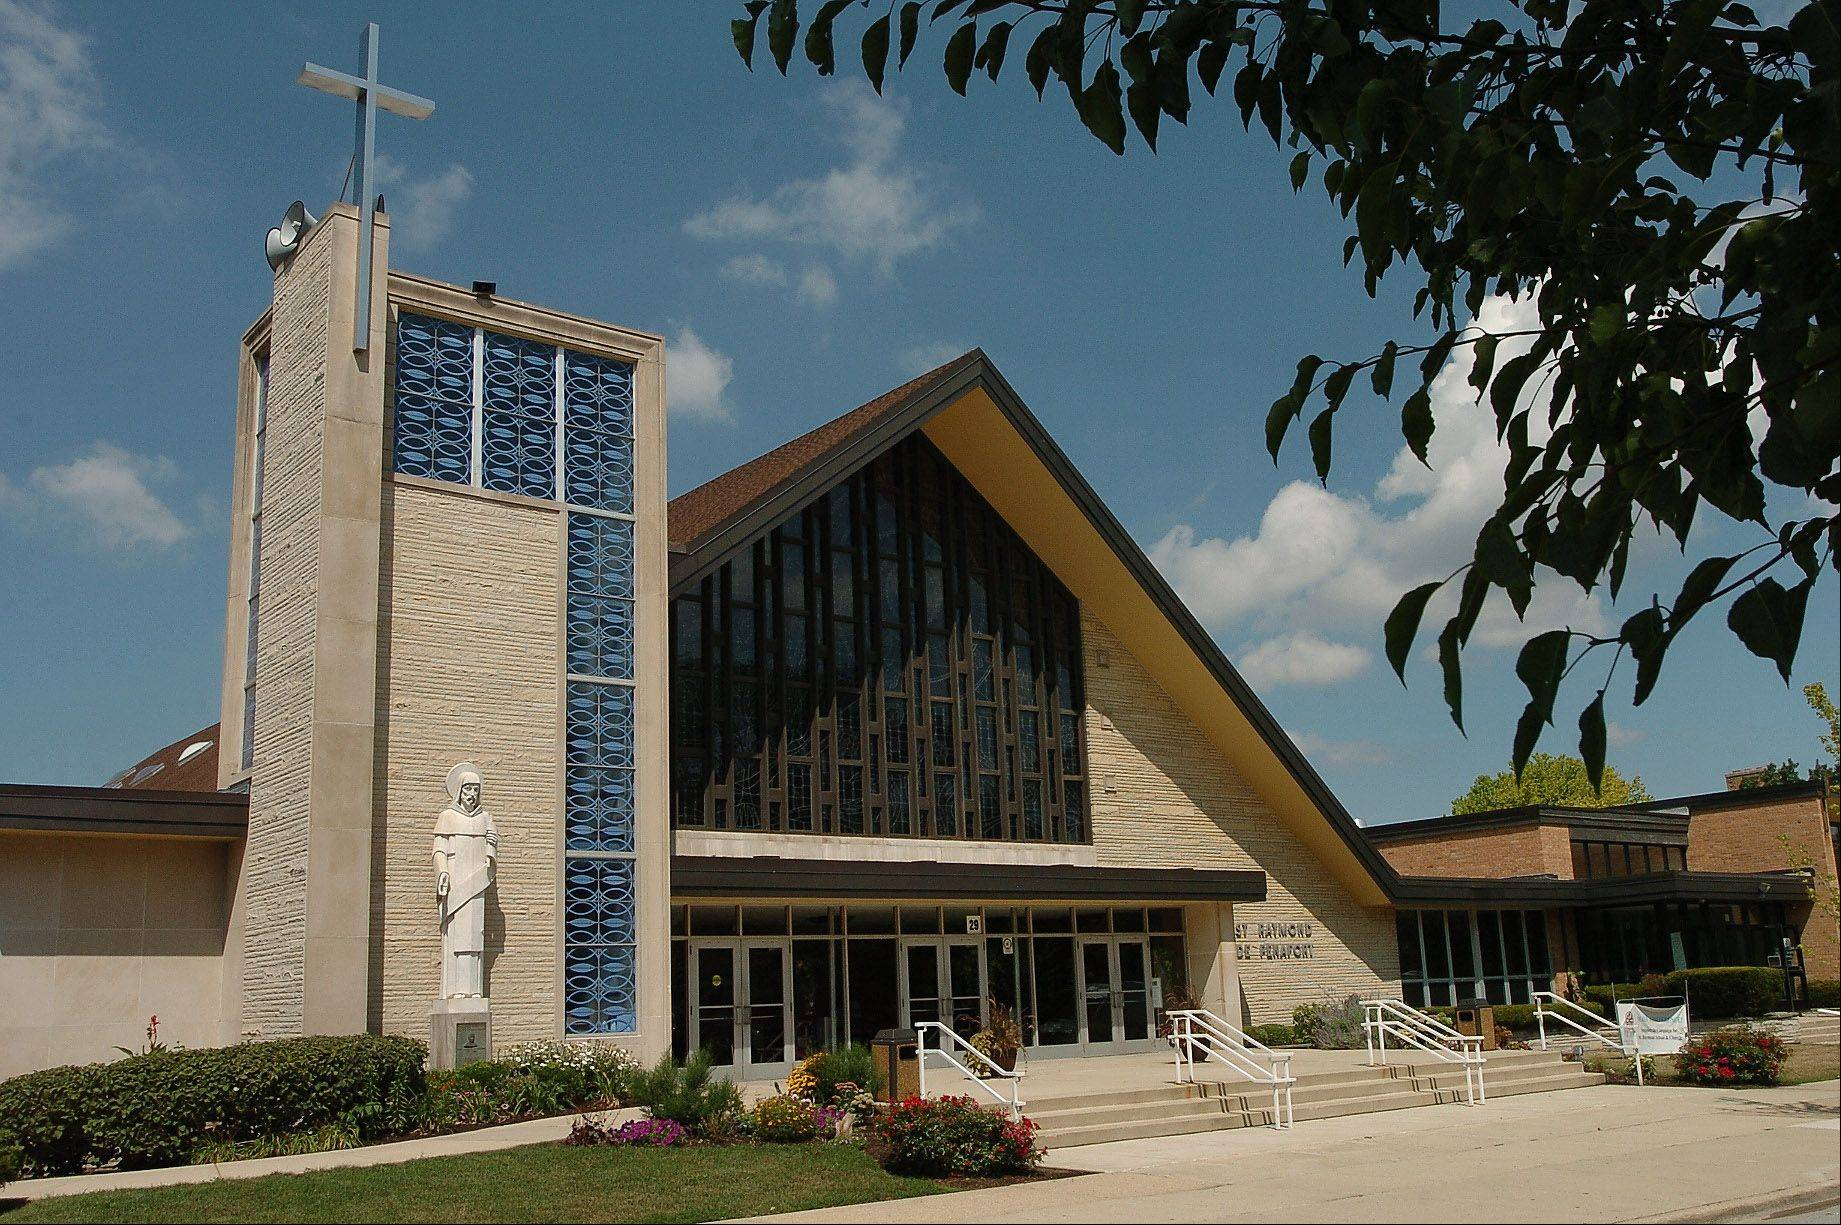 St. Raymond de Penafort Catholic Church in Mount Prospect is running a fundraising campaign to renovate the church and school properties.